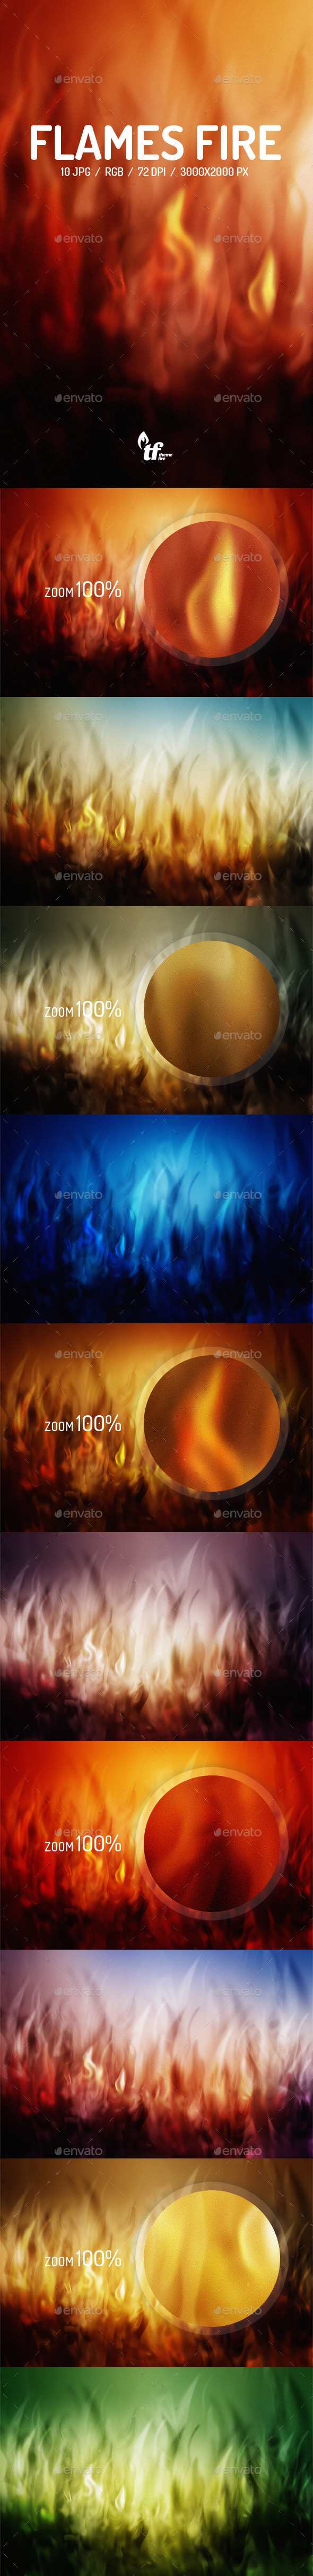 Flames Fire Backgrounds